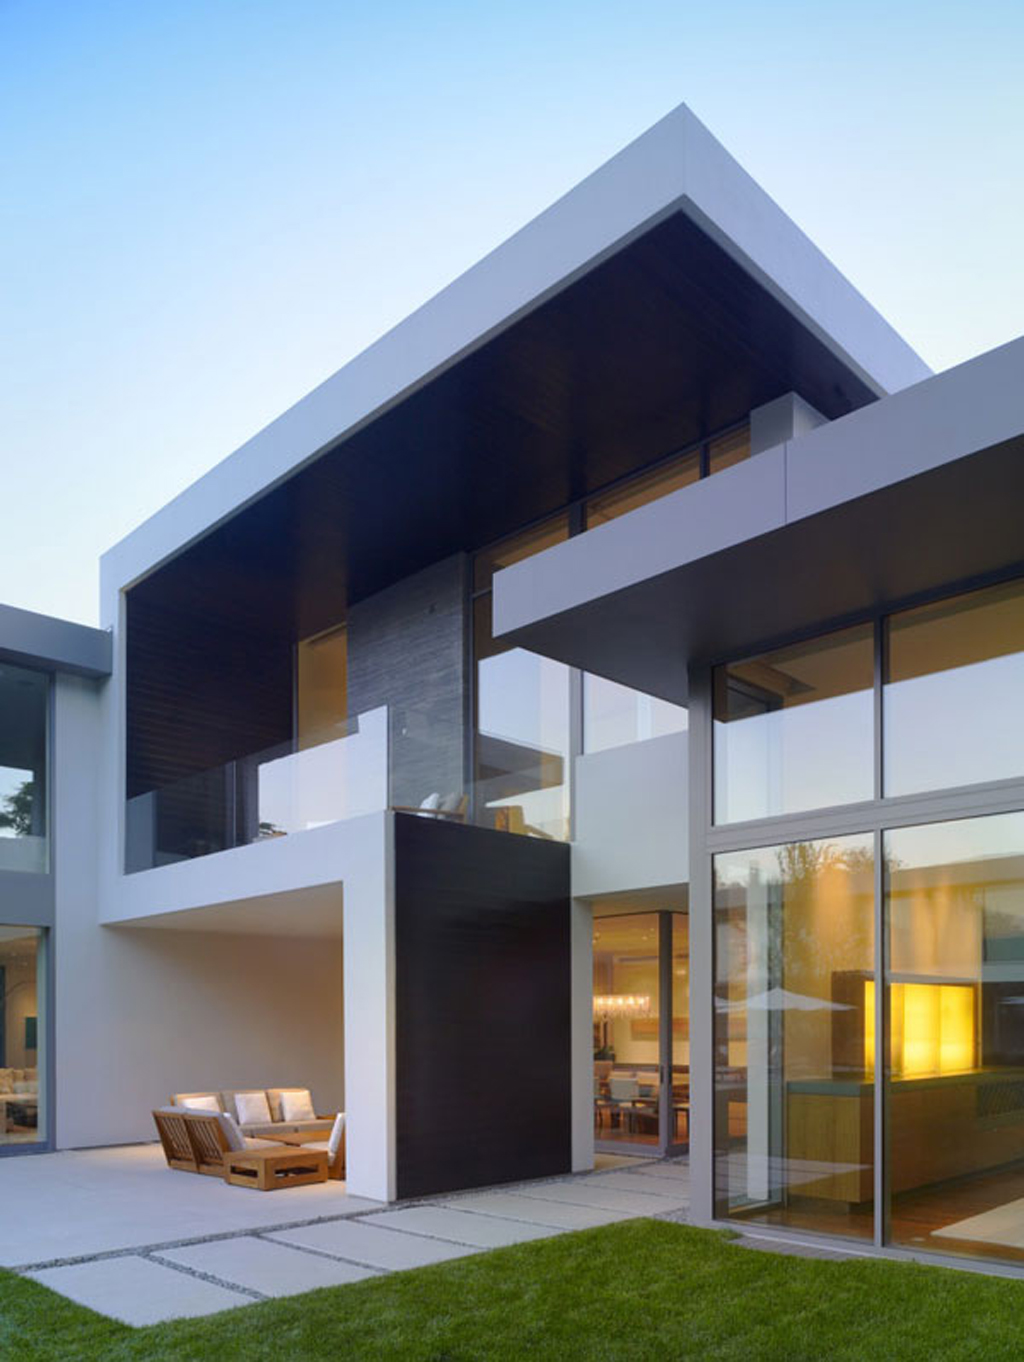 Modern Homes Plans Architecture Villa Image Architecture Design For Home